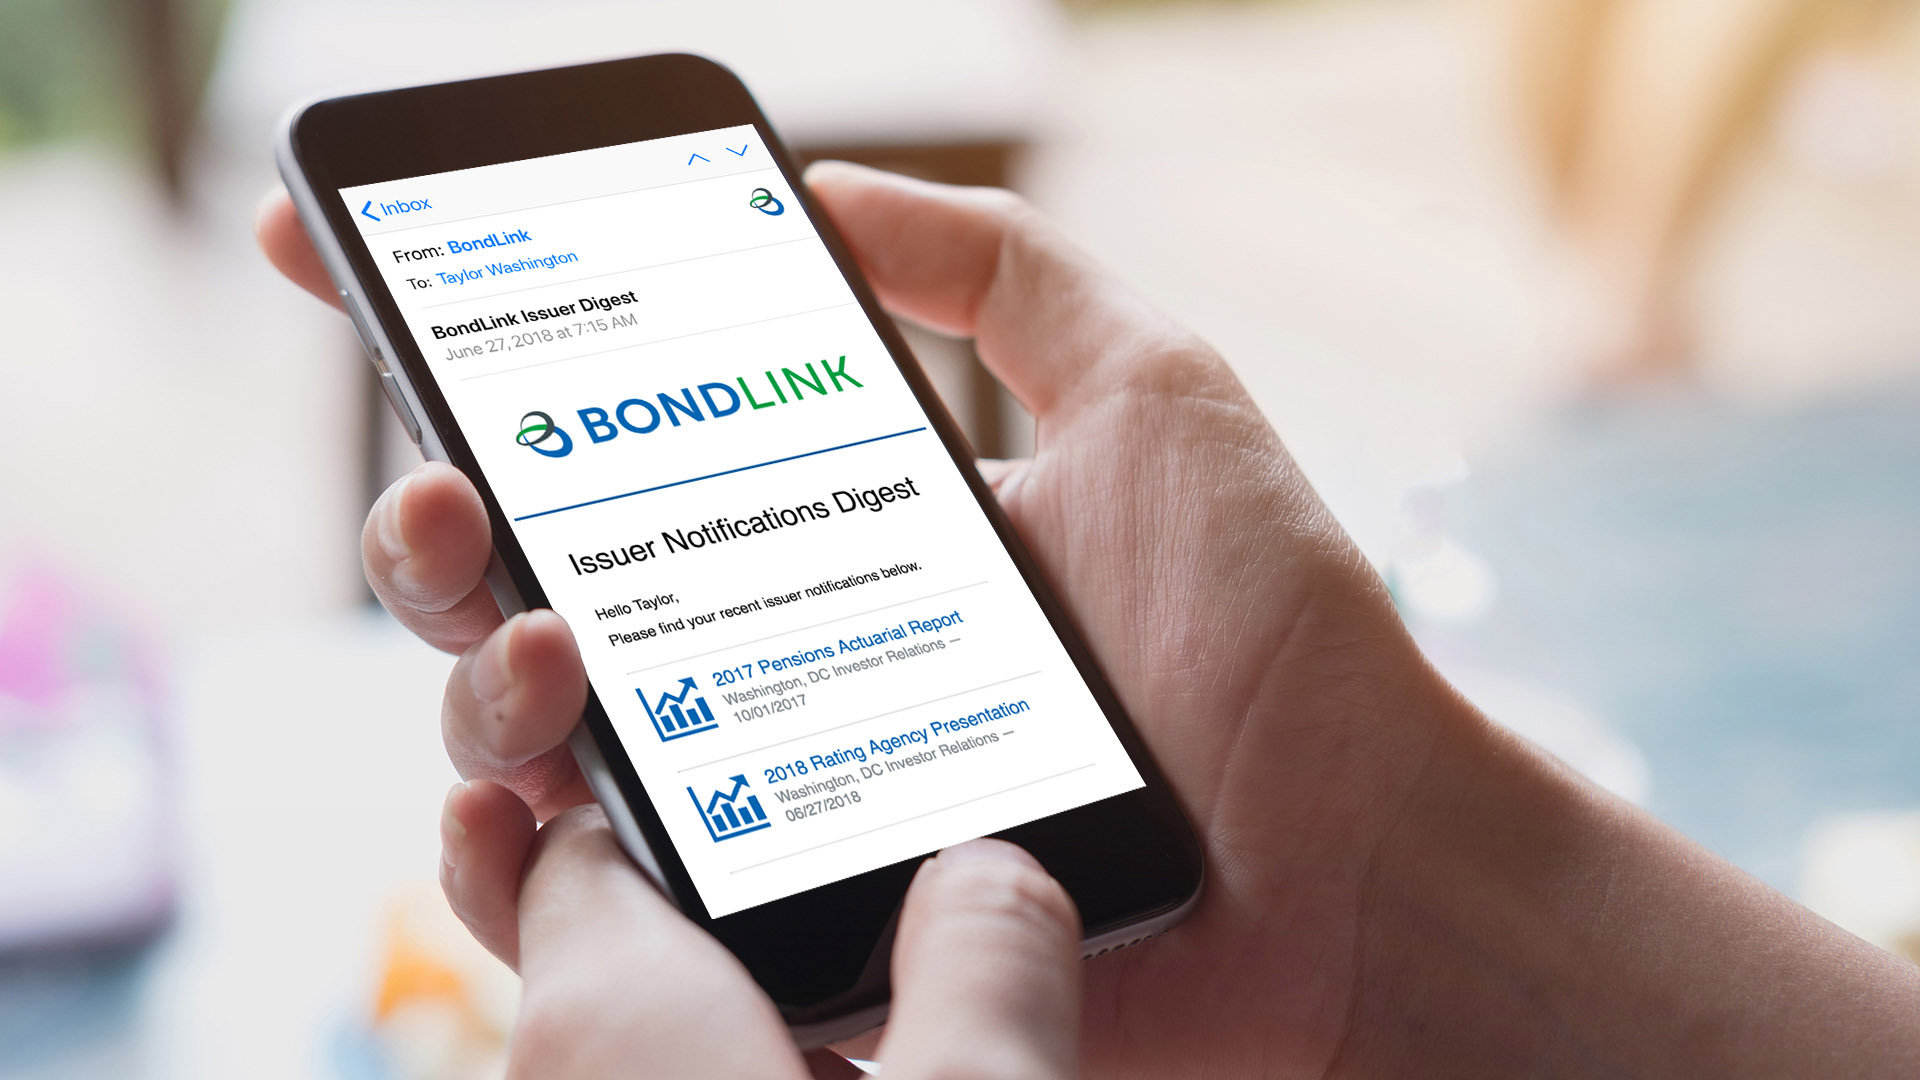 BondLink email on a phone